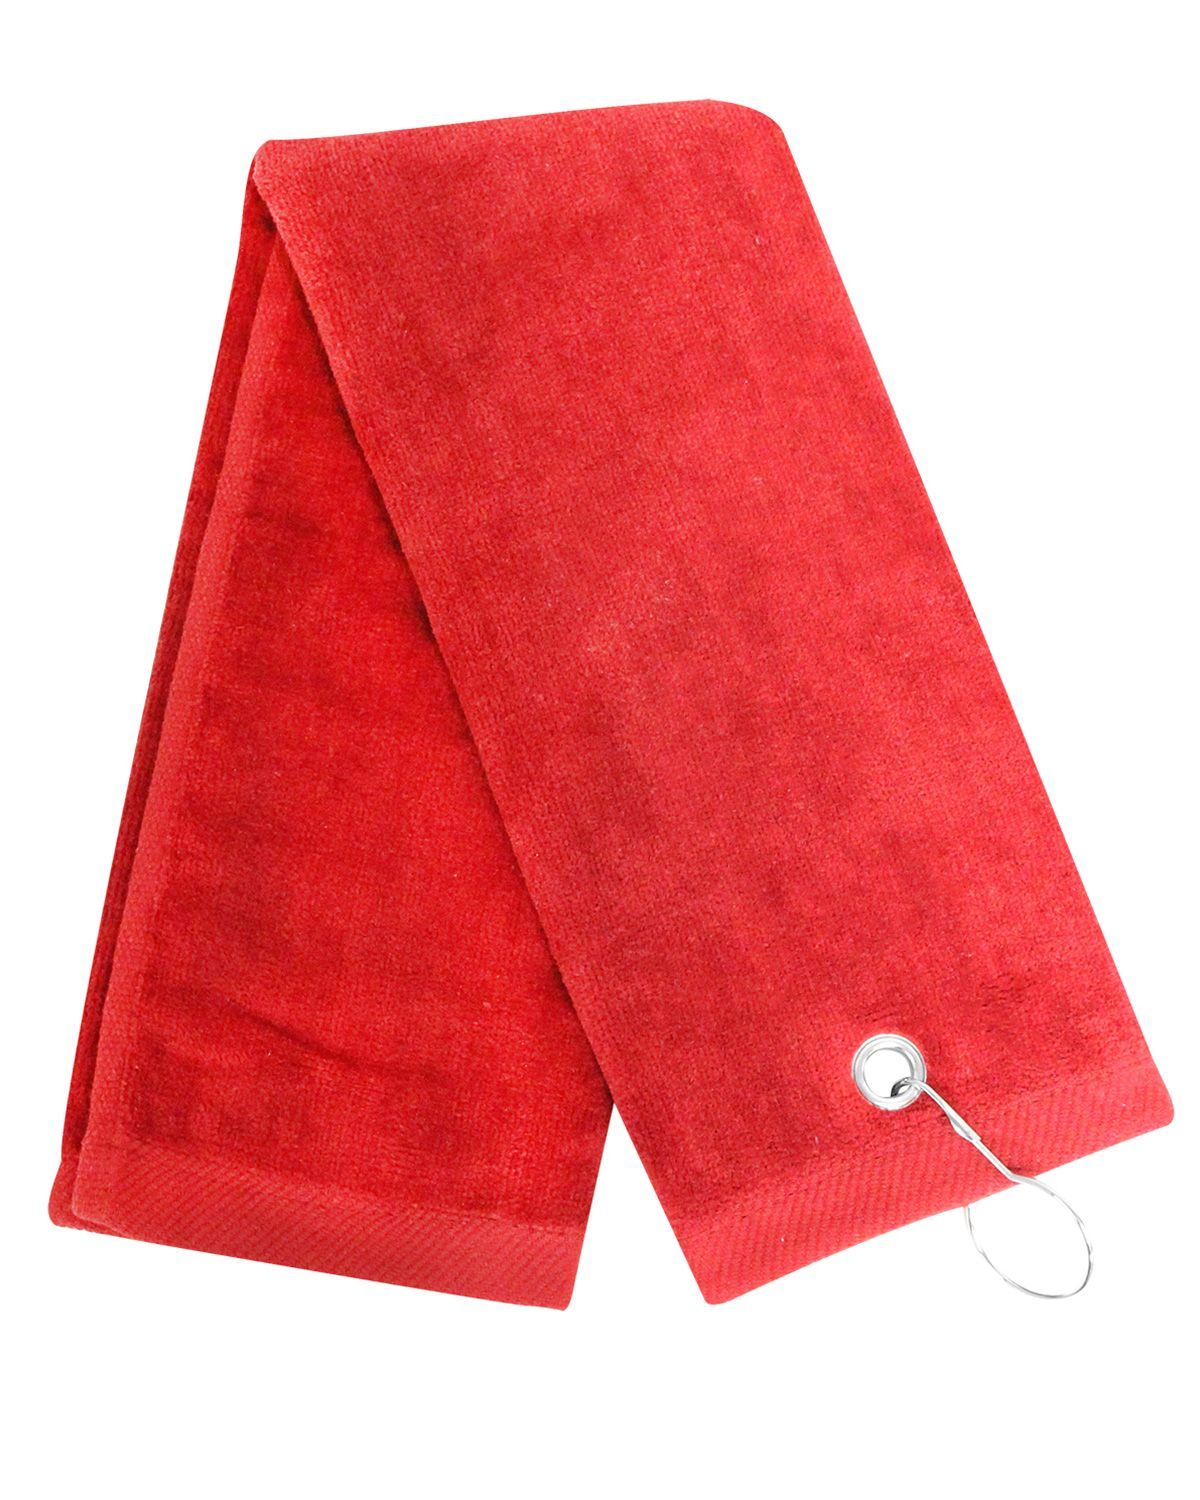 Carmel Towel Company C1624TG Legacy Trifold Golf Towel with Grommet